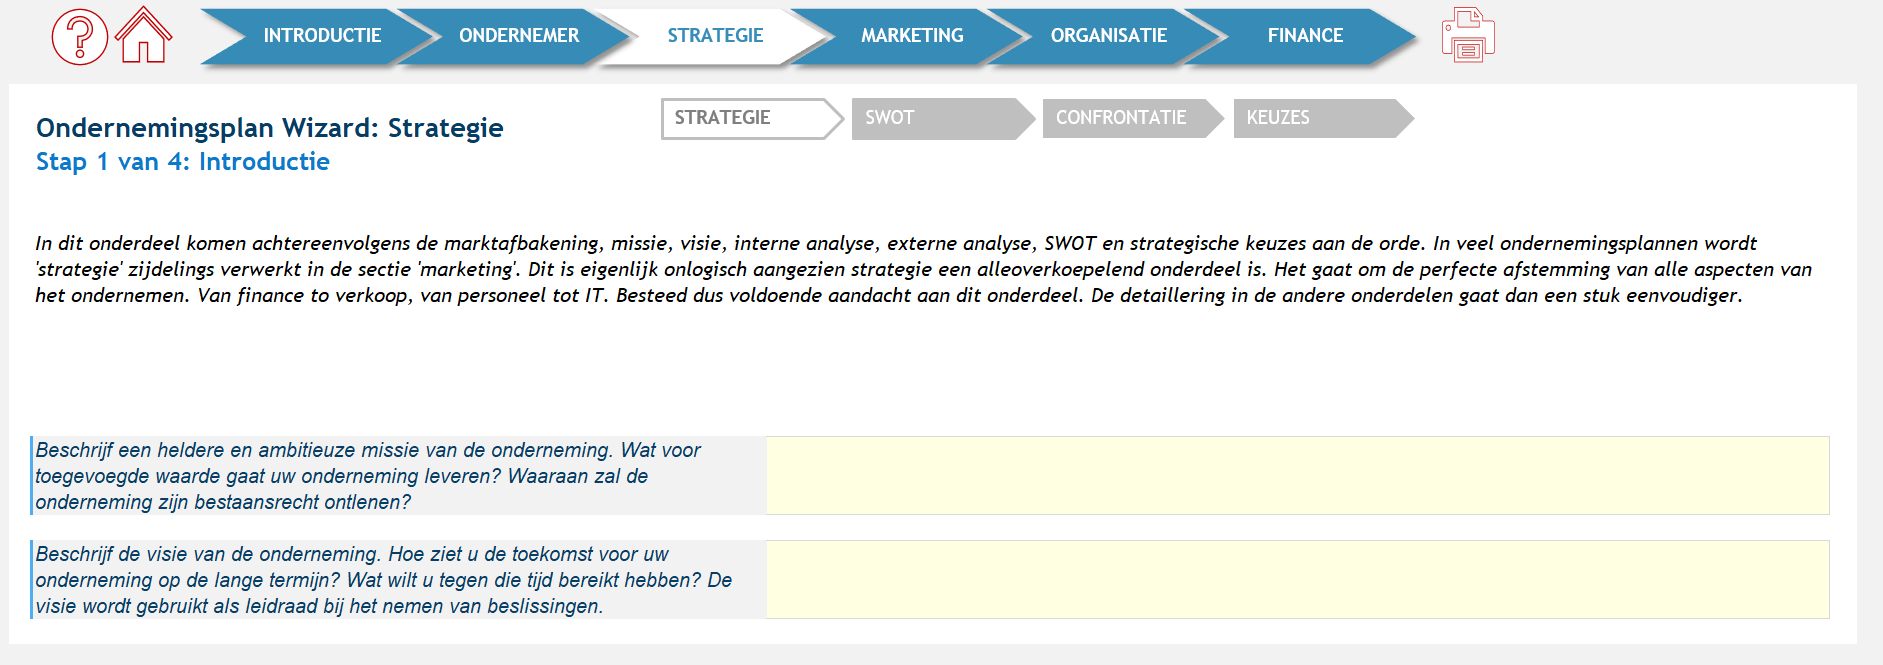 instructie ondernemingsplan applicatie: introductie